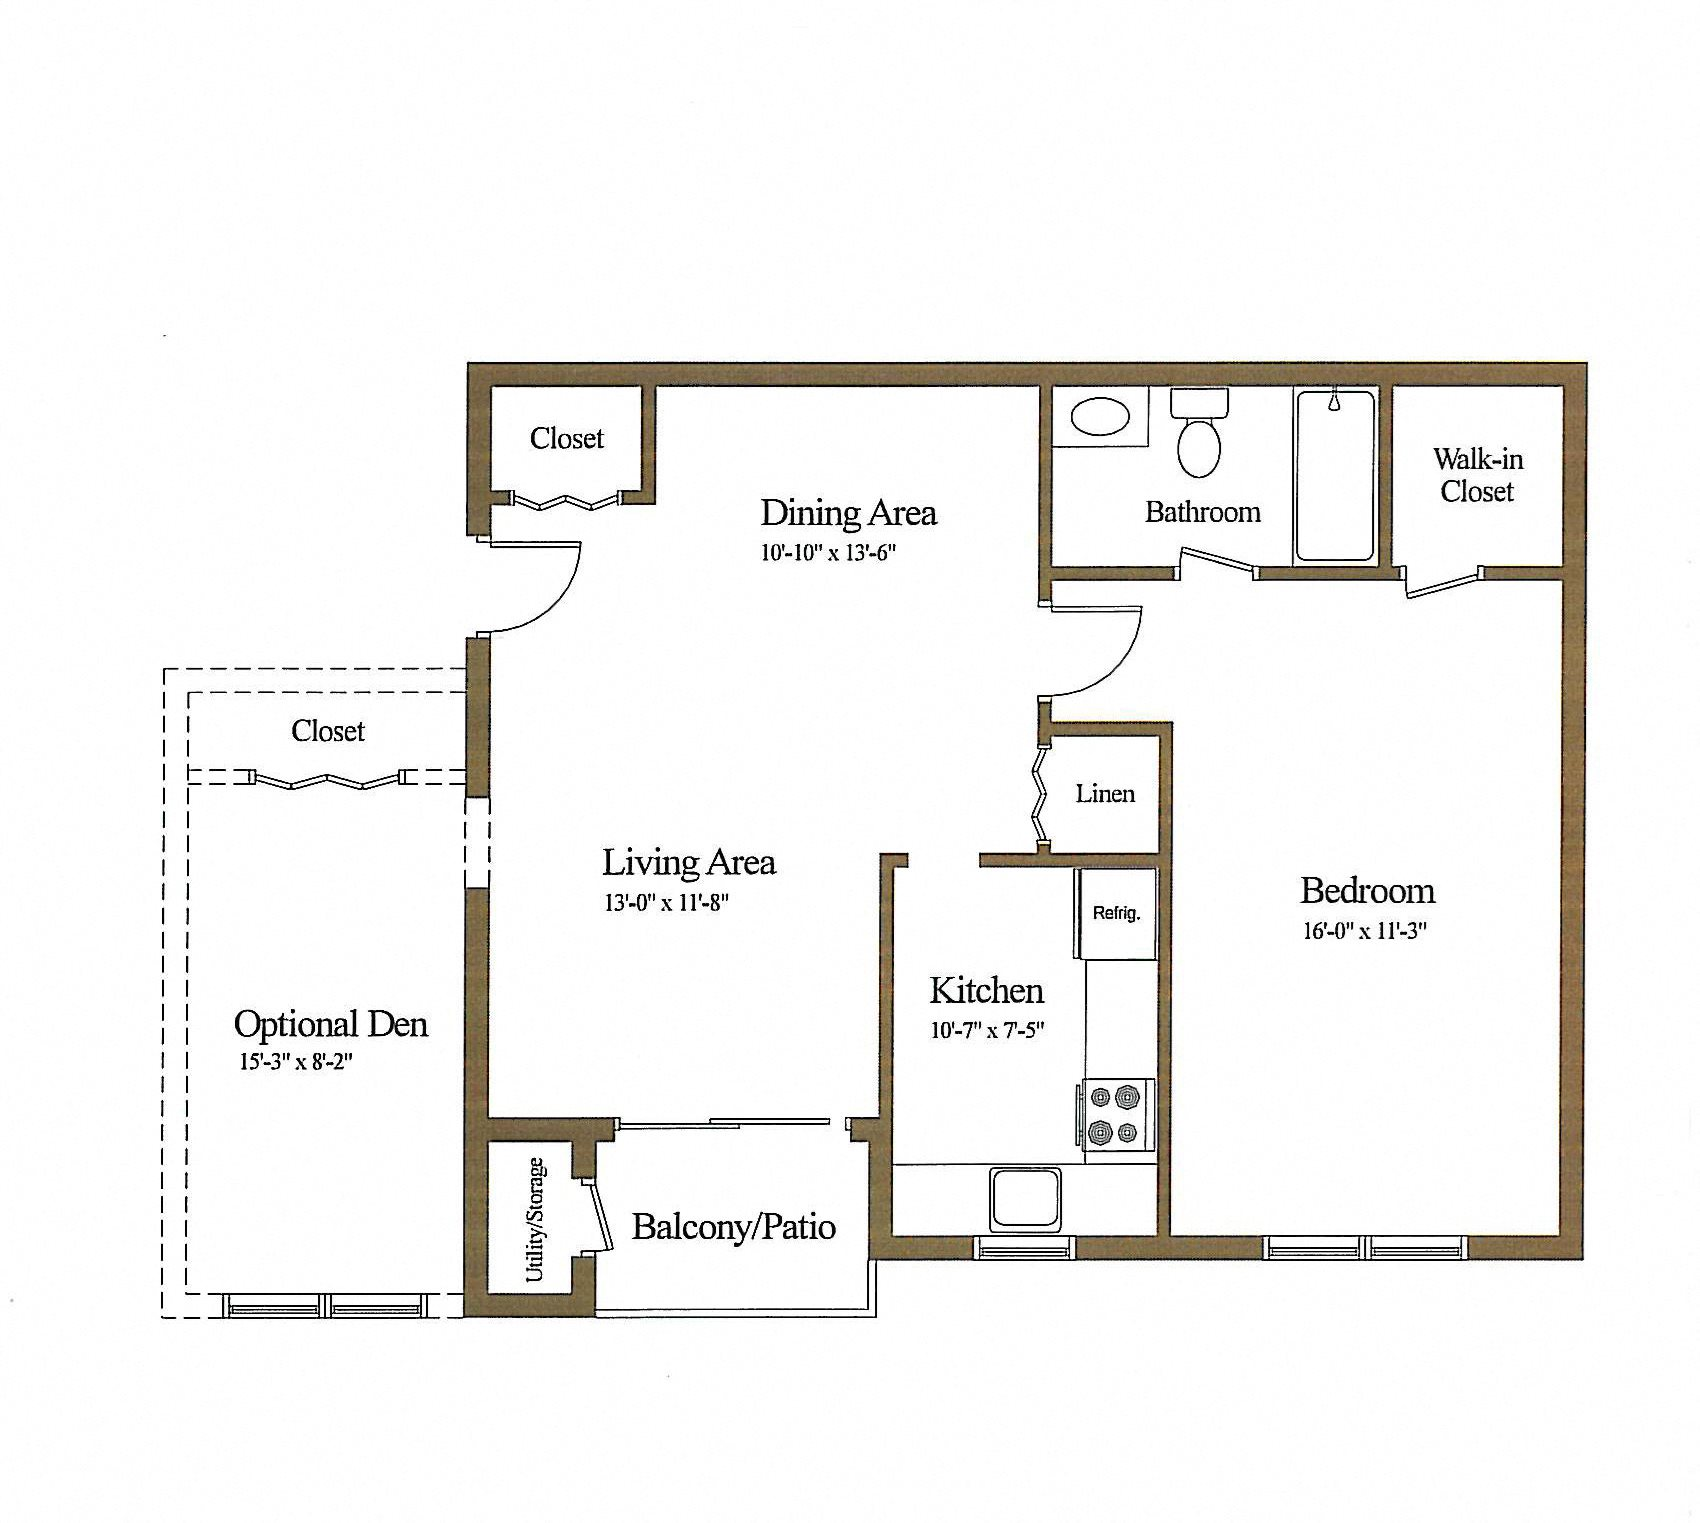 1 2 bedroom apartments in abingdon md woodsdale - Cheap 2 bedroom apartments in tulsa ok ...